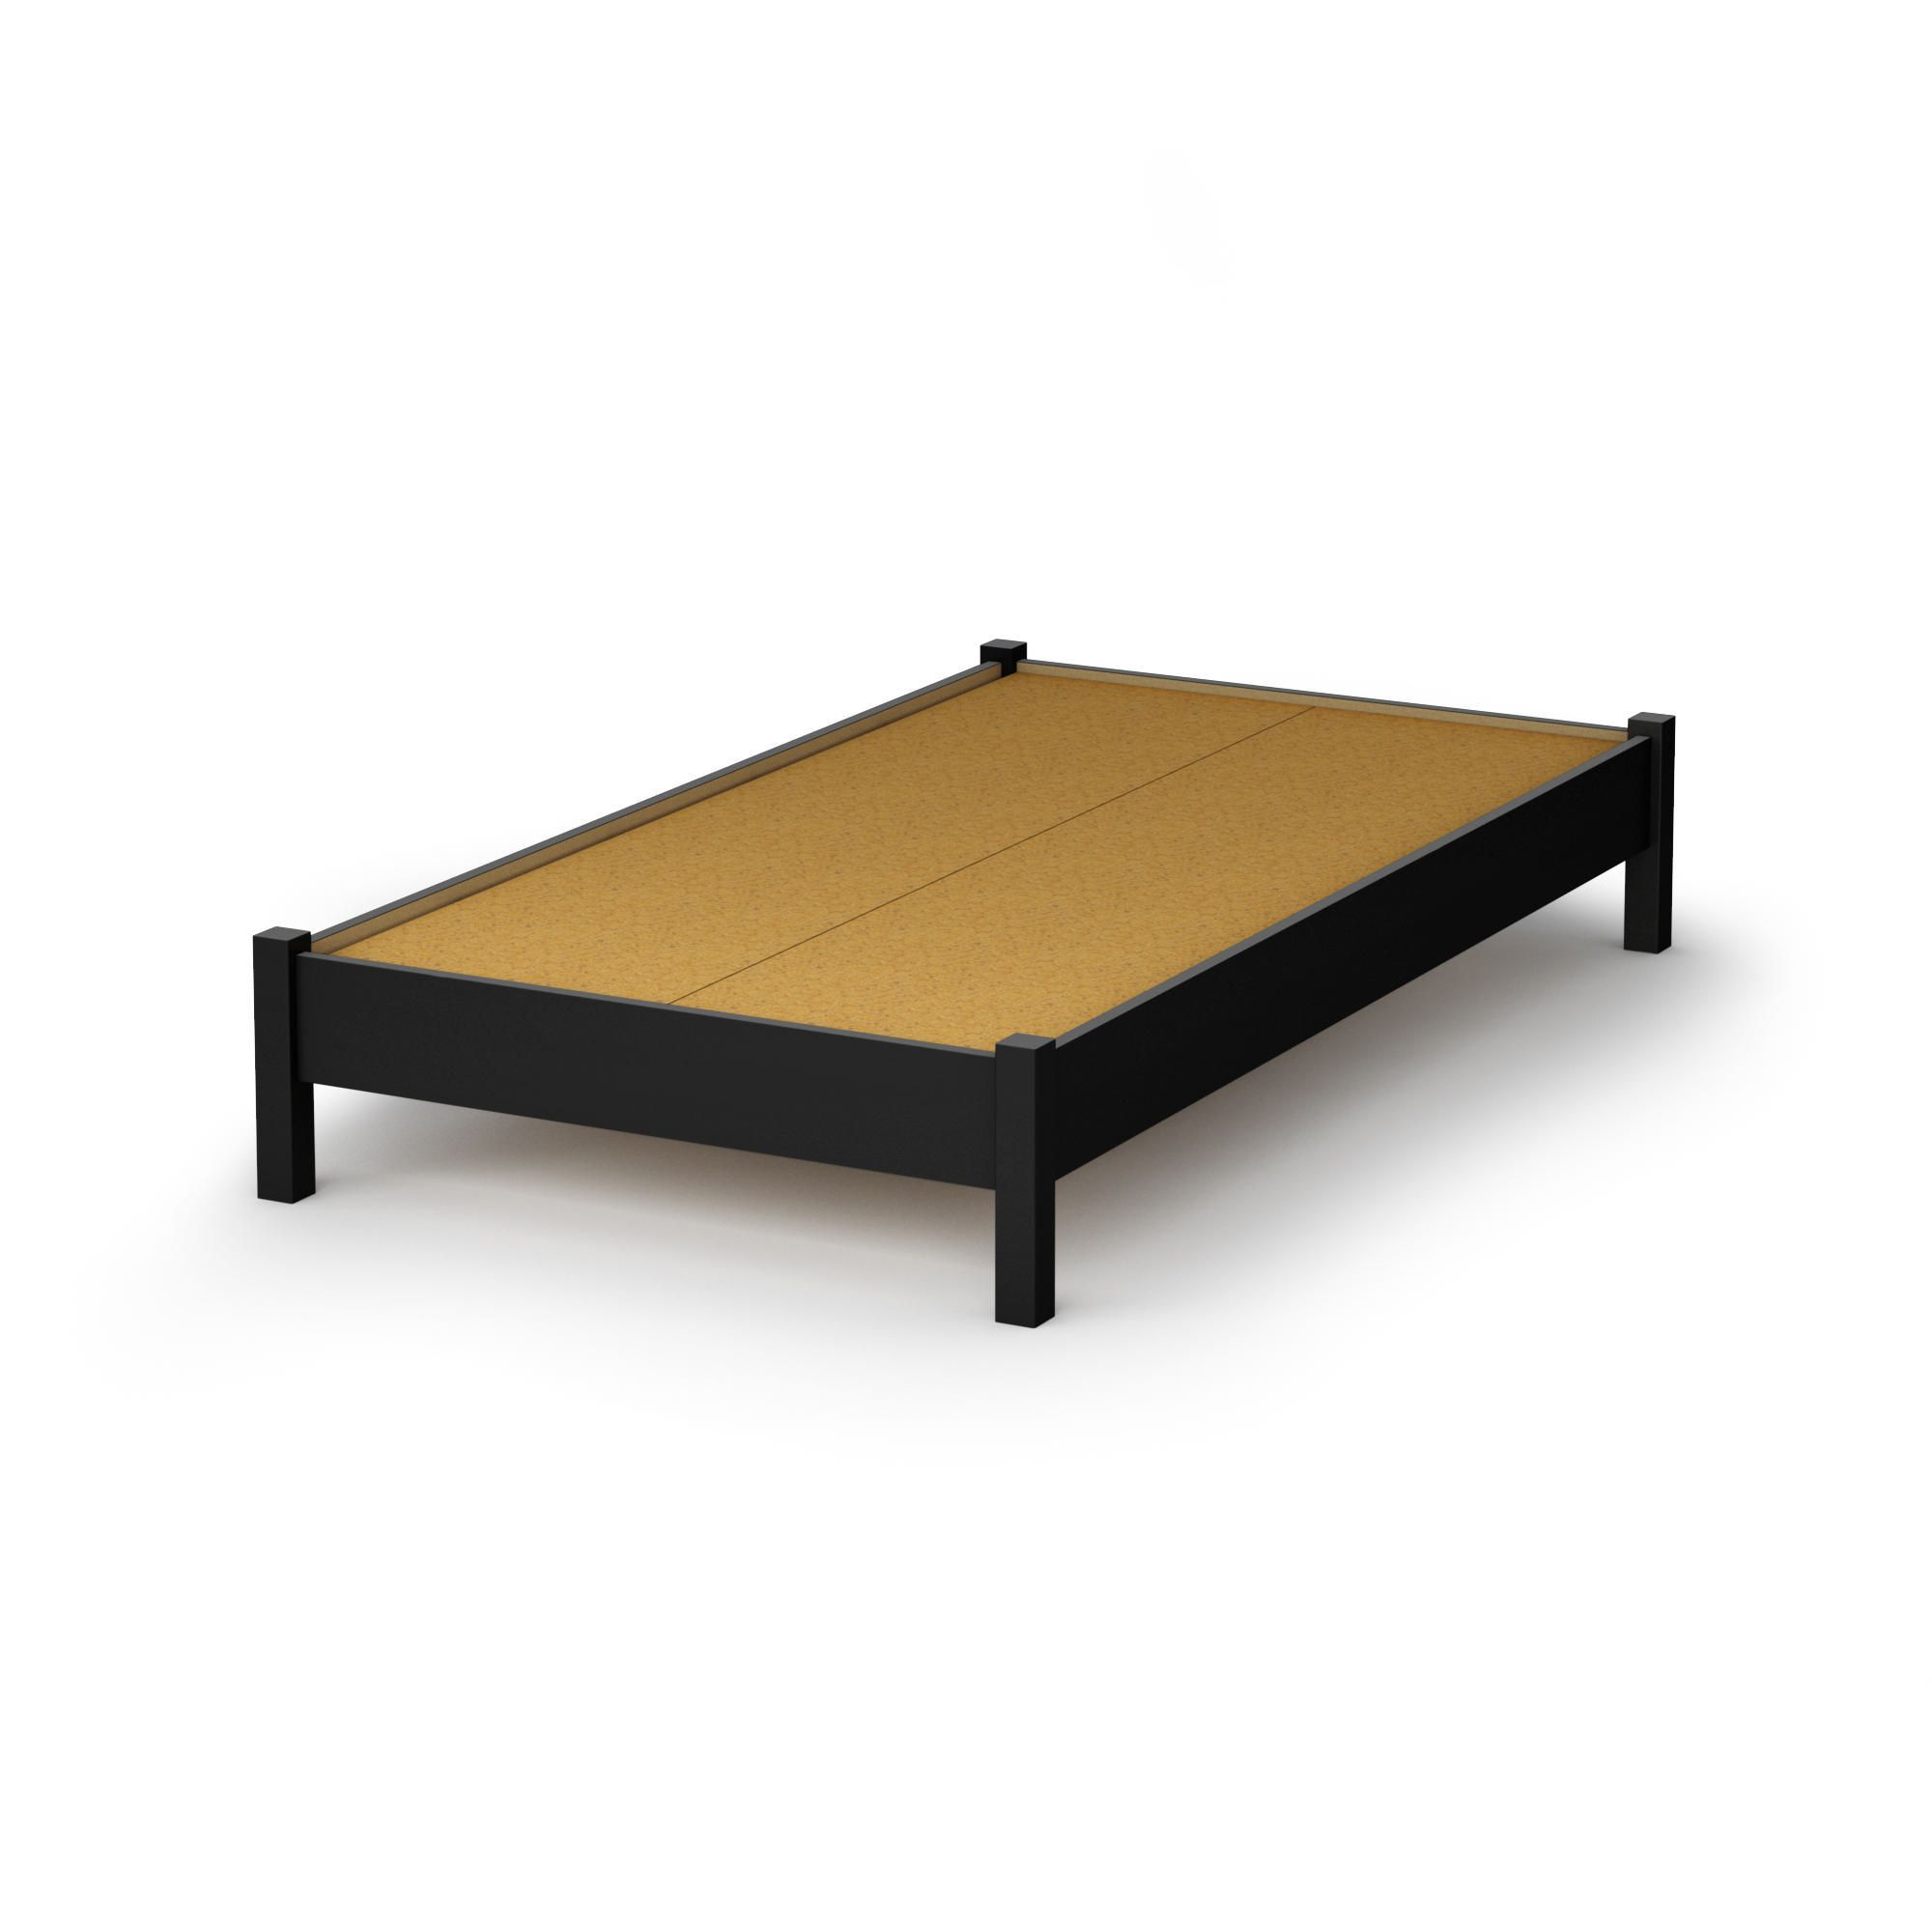 South Shore SoHo Twin 39 inch Platform Bed